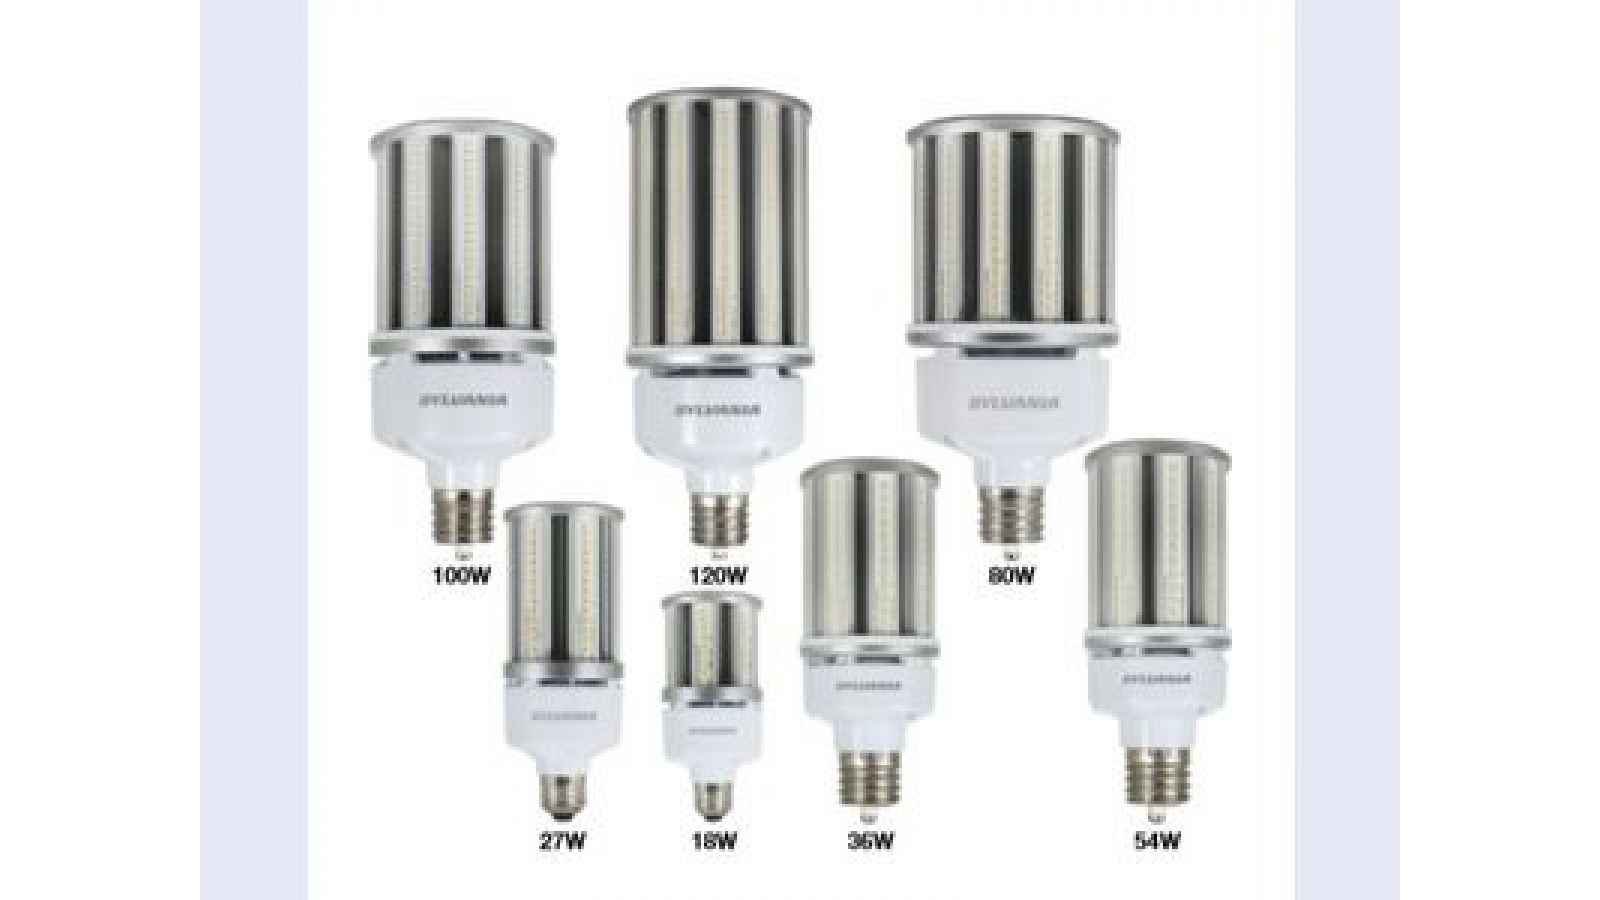 SYLVANIA ULTRA LED High Lumen Lamps